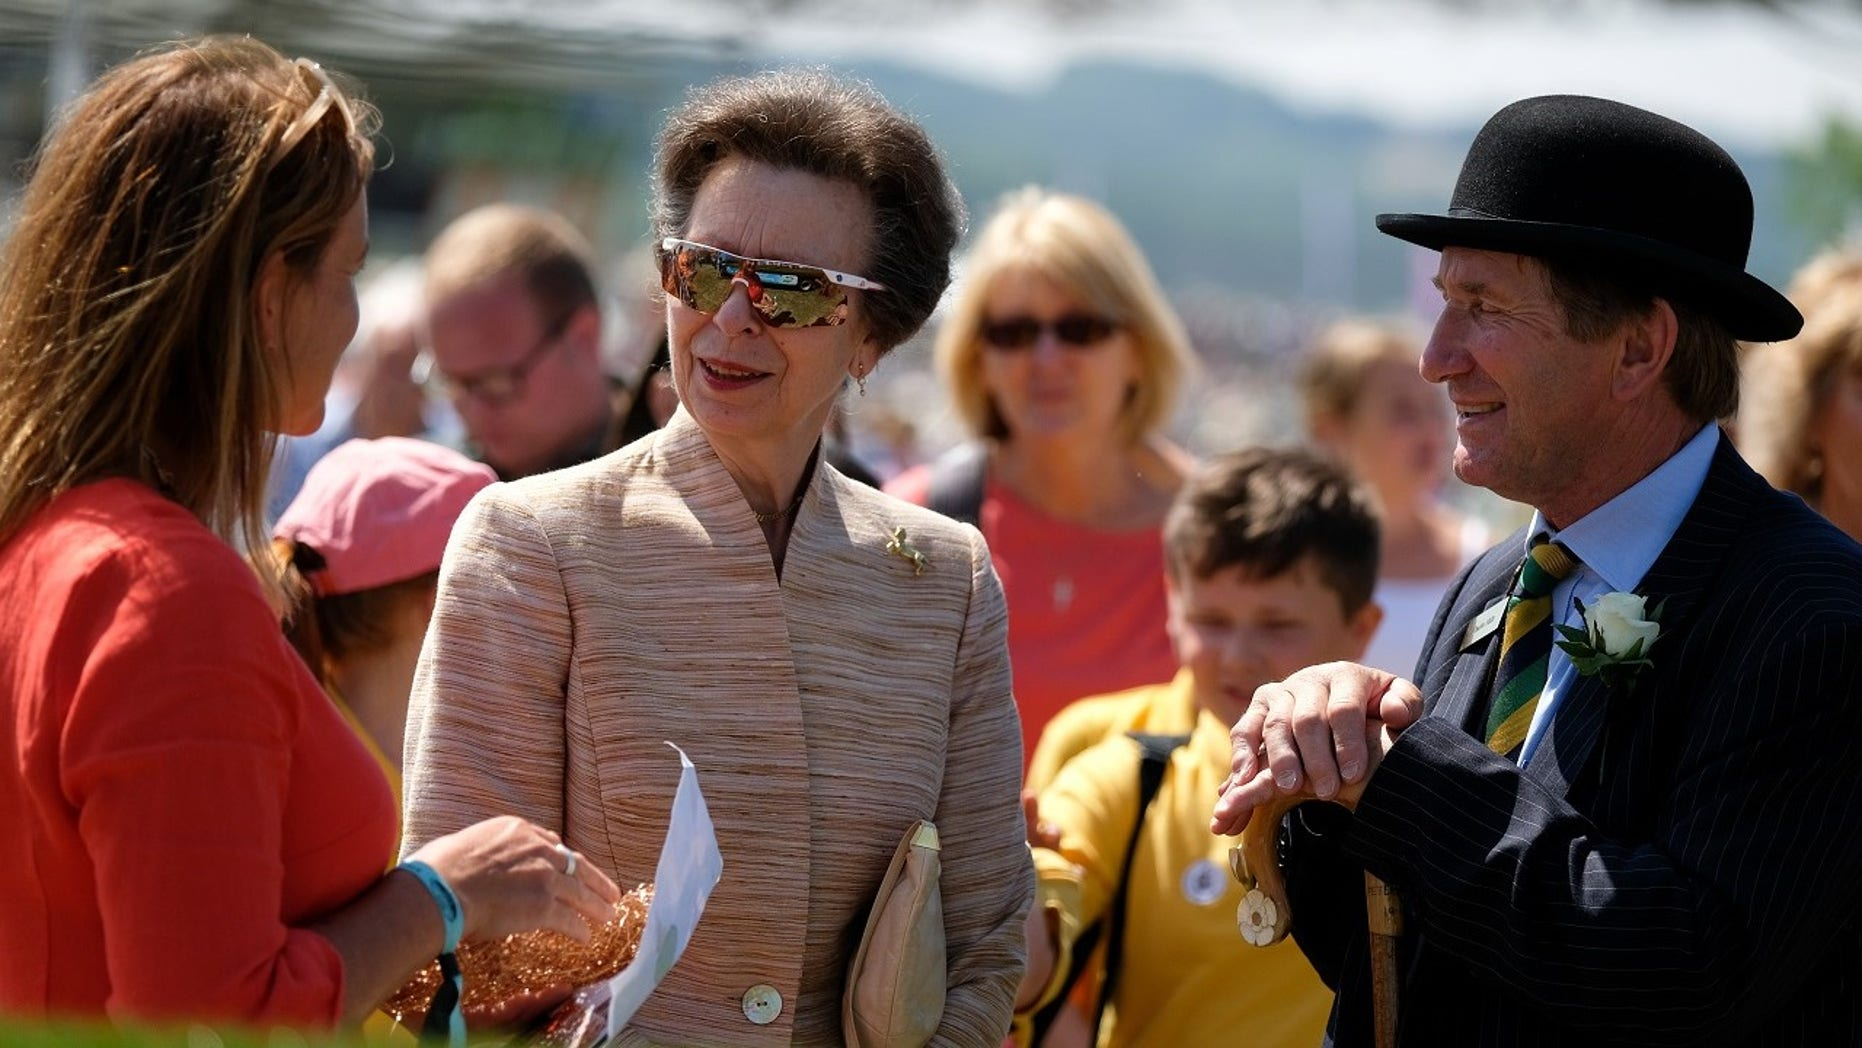 HRH Princess Anne, Princess Royal speaks with Emma Stothard (L) about her sculpture Craven Heifer as she visits during the second day of the 160th Great Yorkshire Show on July 11, 2018 in Harrogate, England.